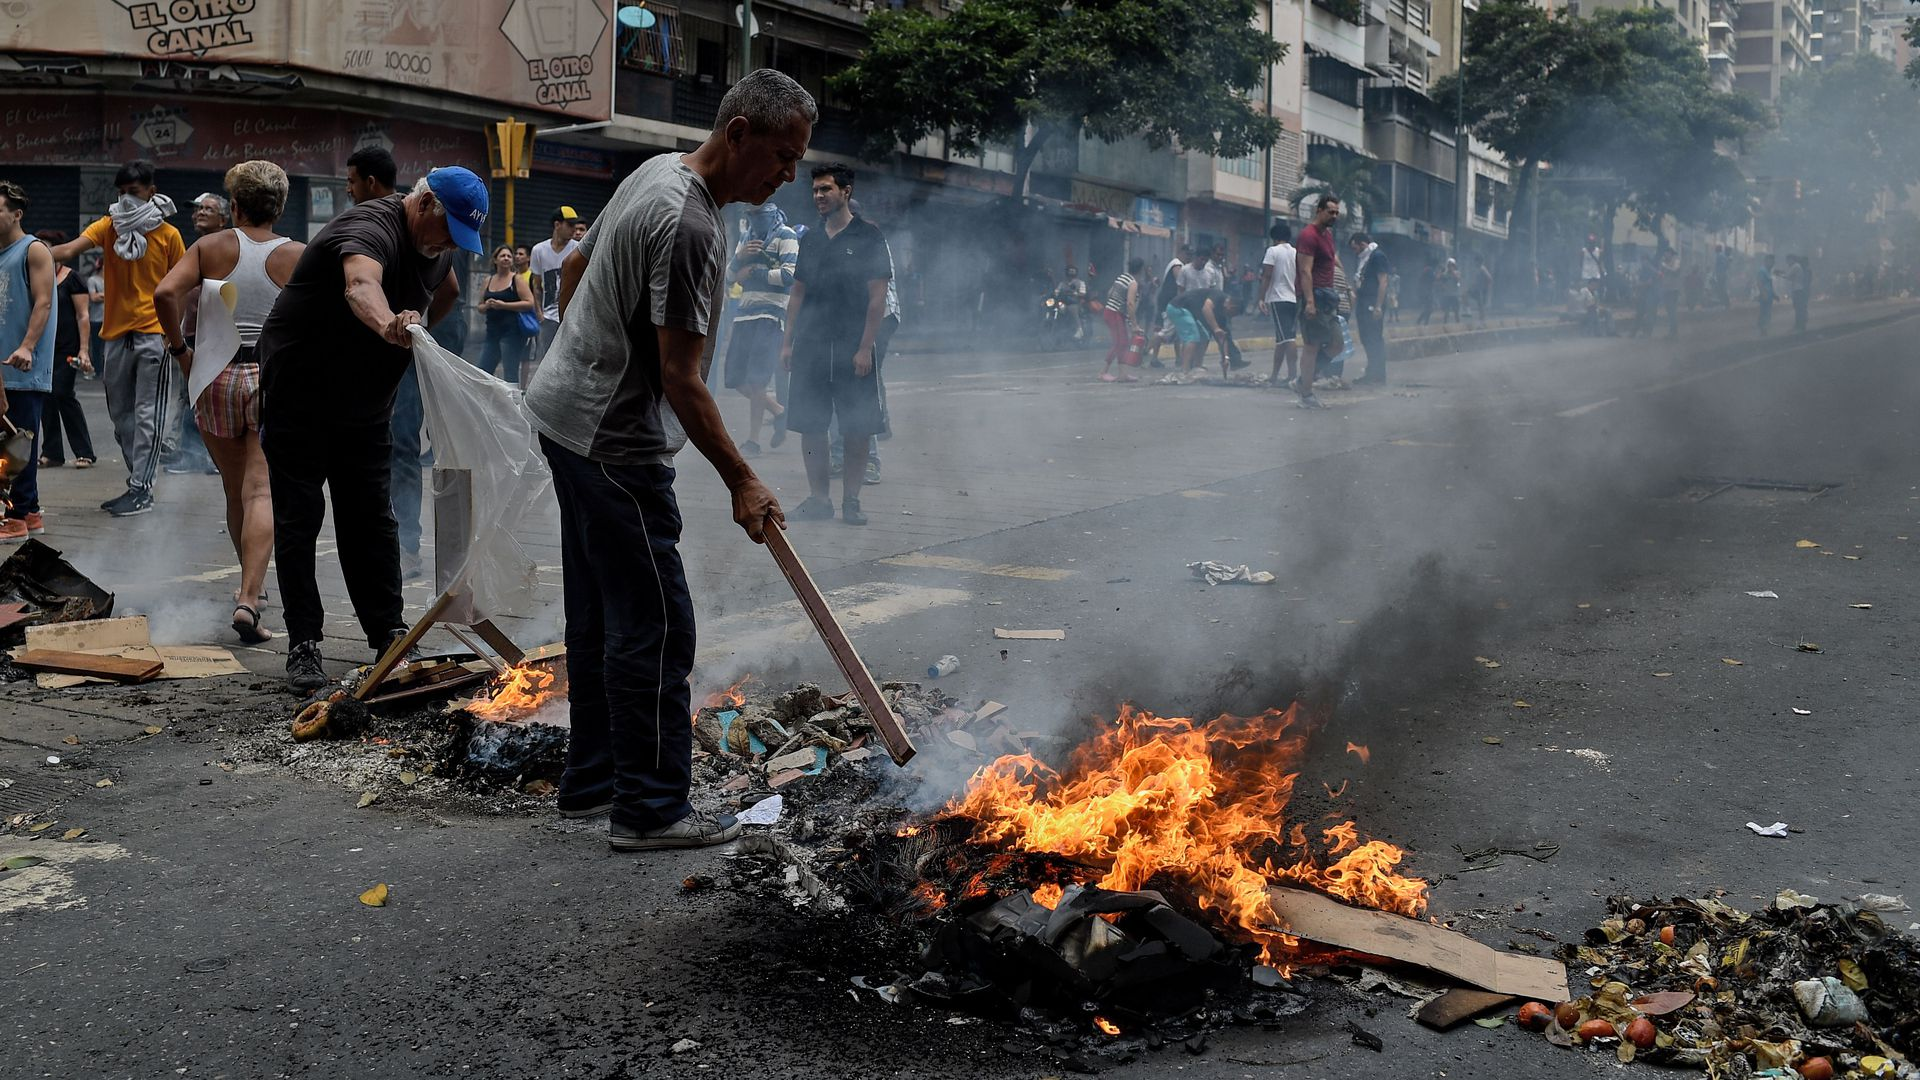 People protest for the lack of water and electric service during a new power outage in Venezuela.